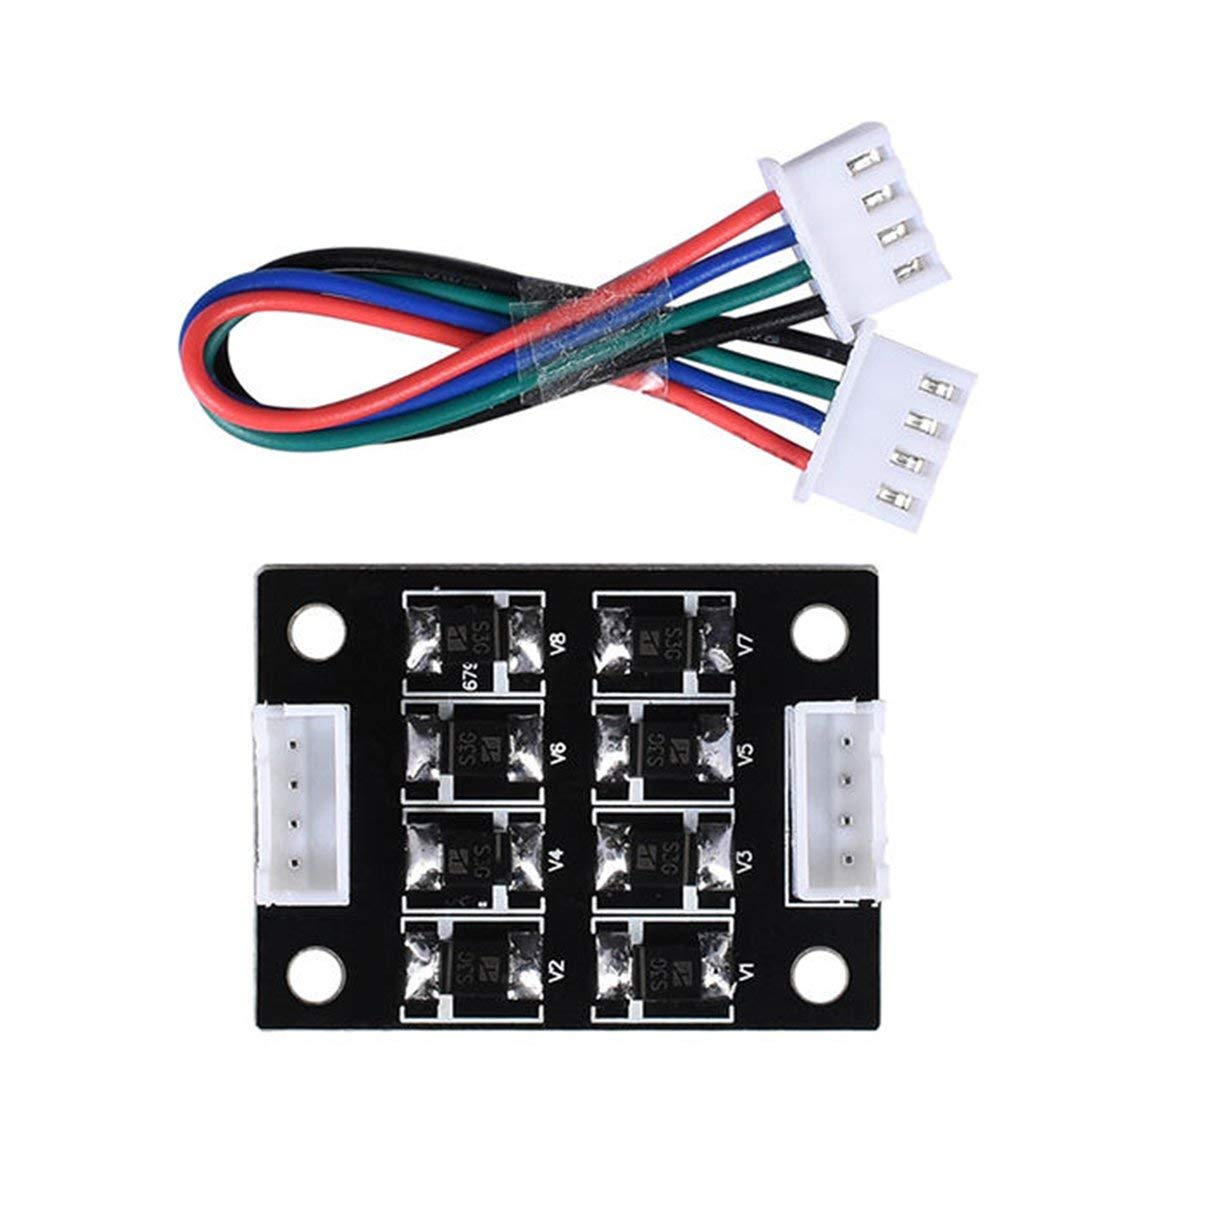 New TL-Smoother V1.0 Addon Module for 3D pinter Motor Drivers 3D Printer Accessories BIQU TL-Smoother V1.0 Addon Module JullyCAnnice